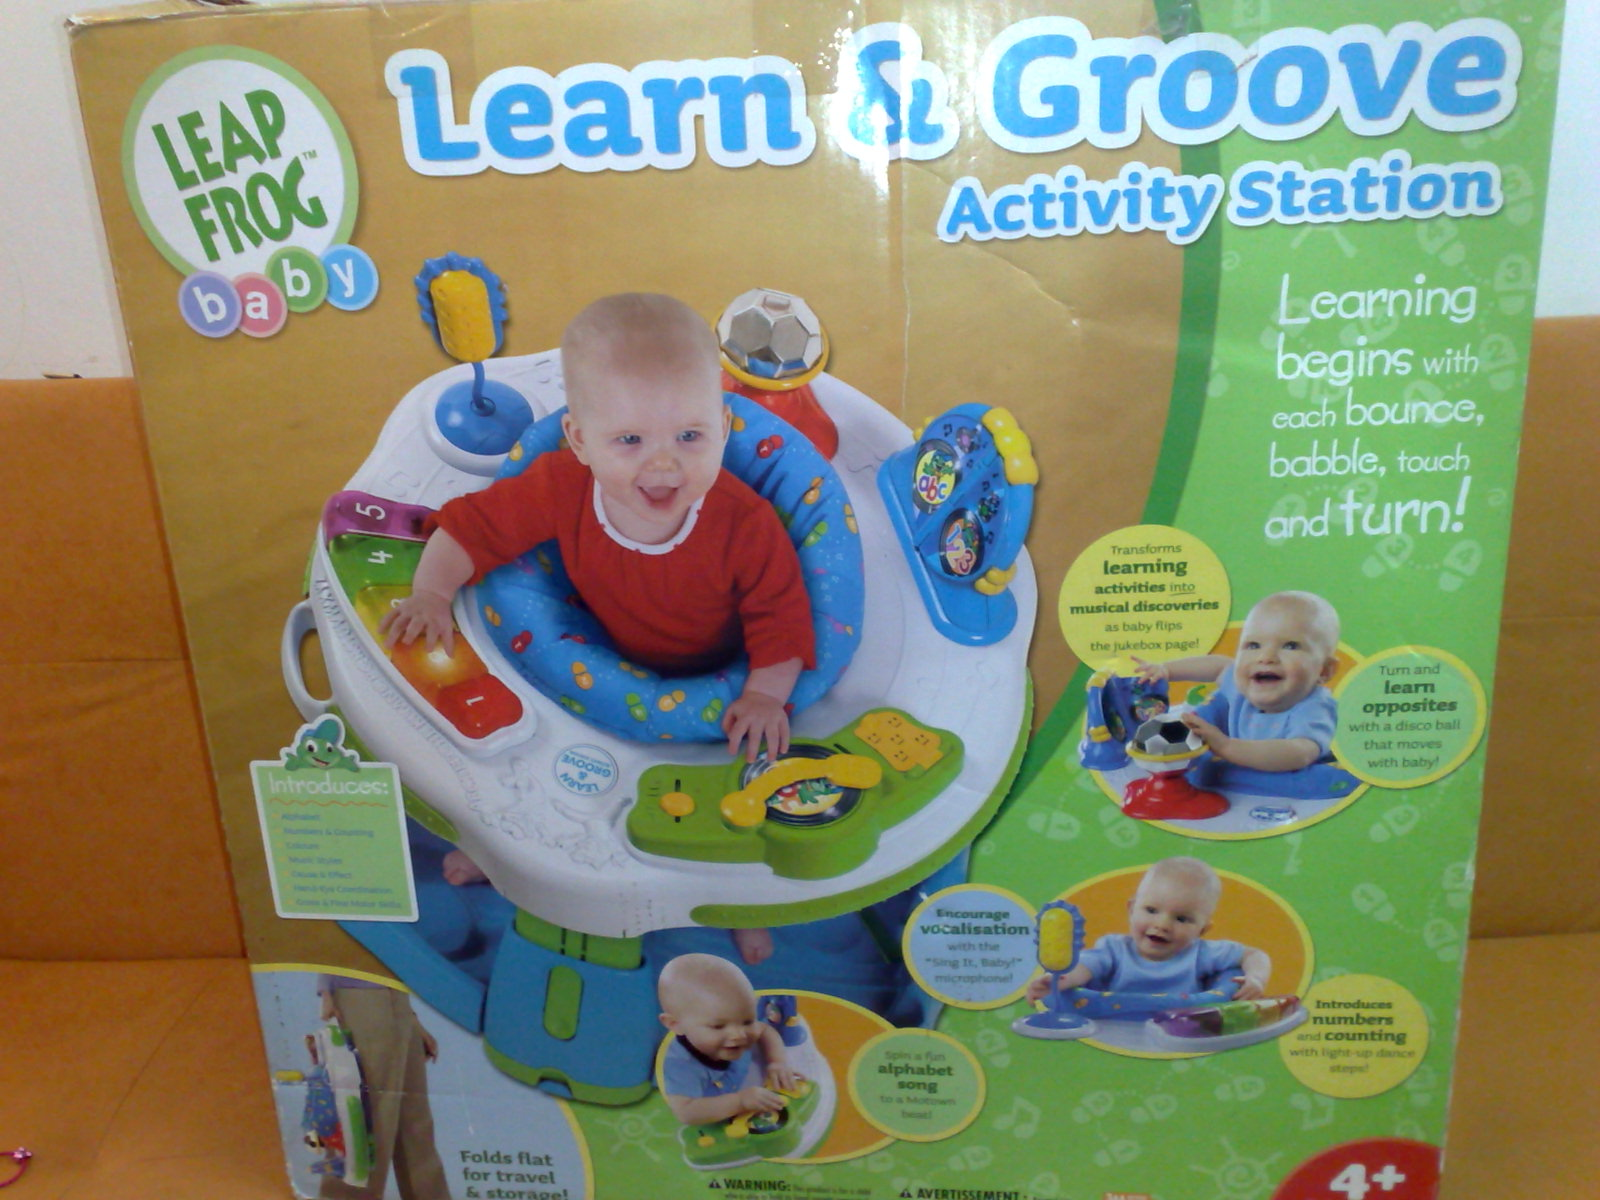 Leapfrog Learn Groove Activity Station - YouTube